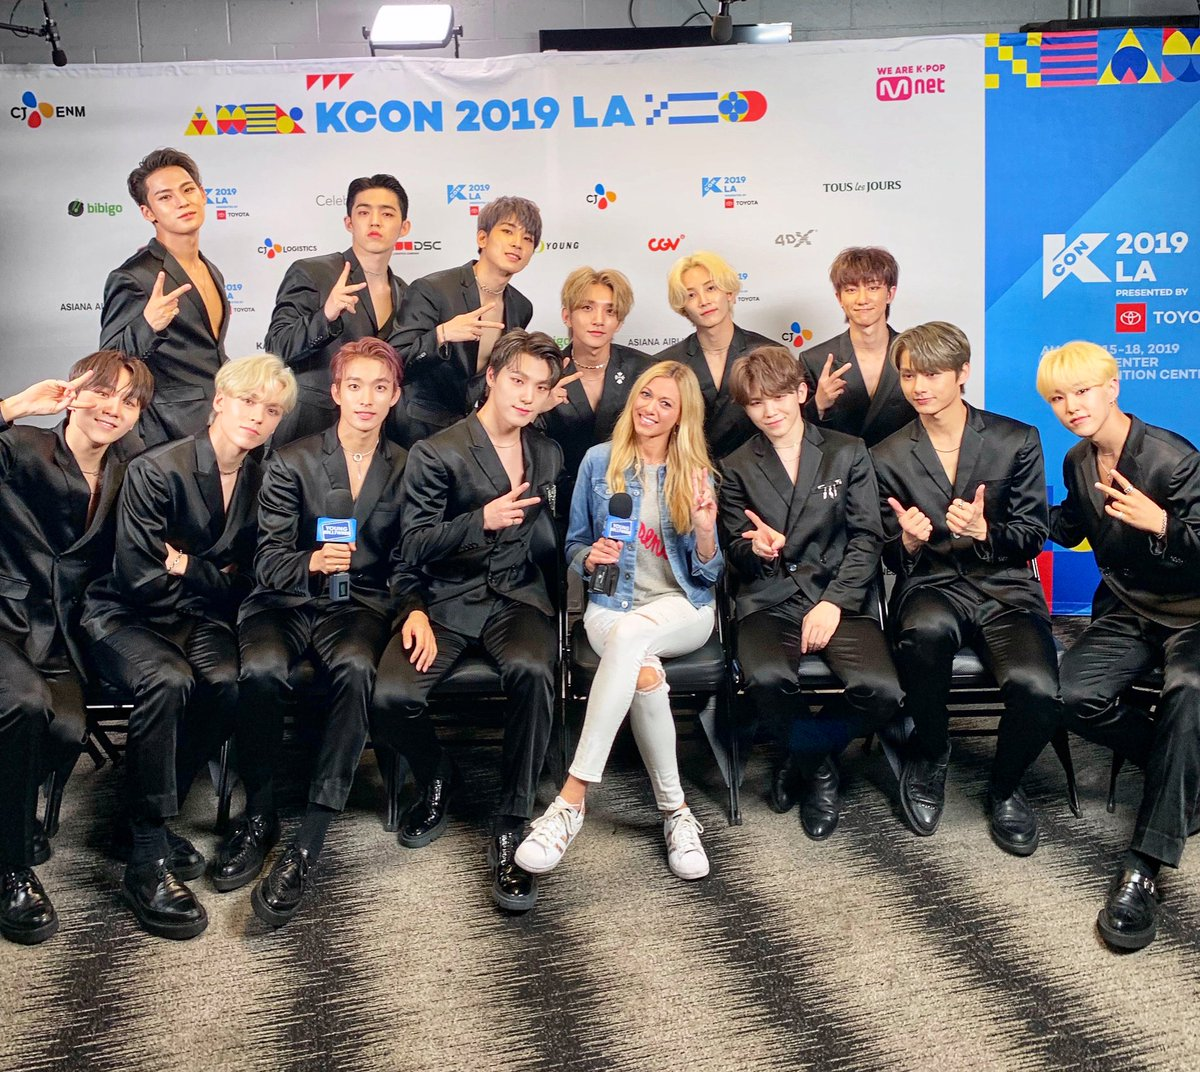 test Twitter Media - Having a blast with #SEVENTEEN backstage at #KCON19LA tonight! Stay tuned for our interview with @pledis_17! 😍🖤🎉✌️ @TracyBehr @kconusa #kcon #carats #kpop https://t.co/g9dwUqS8Rd